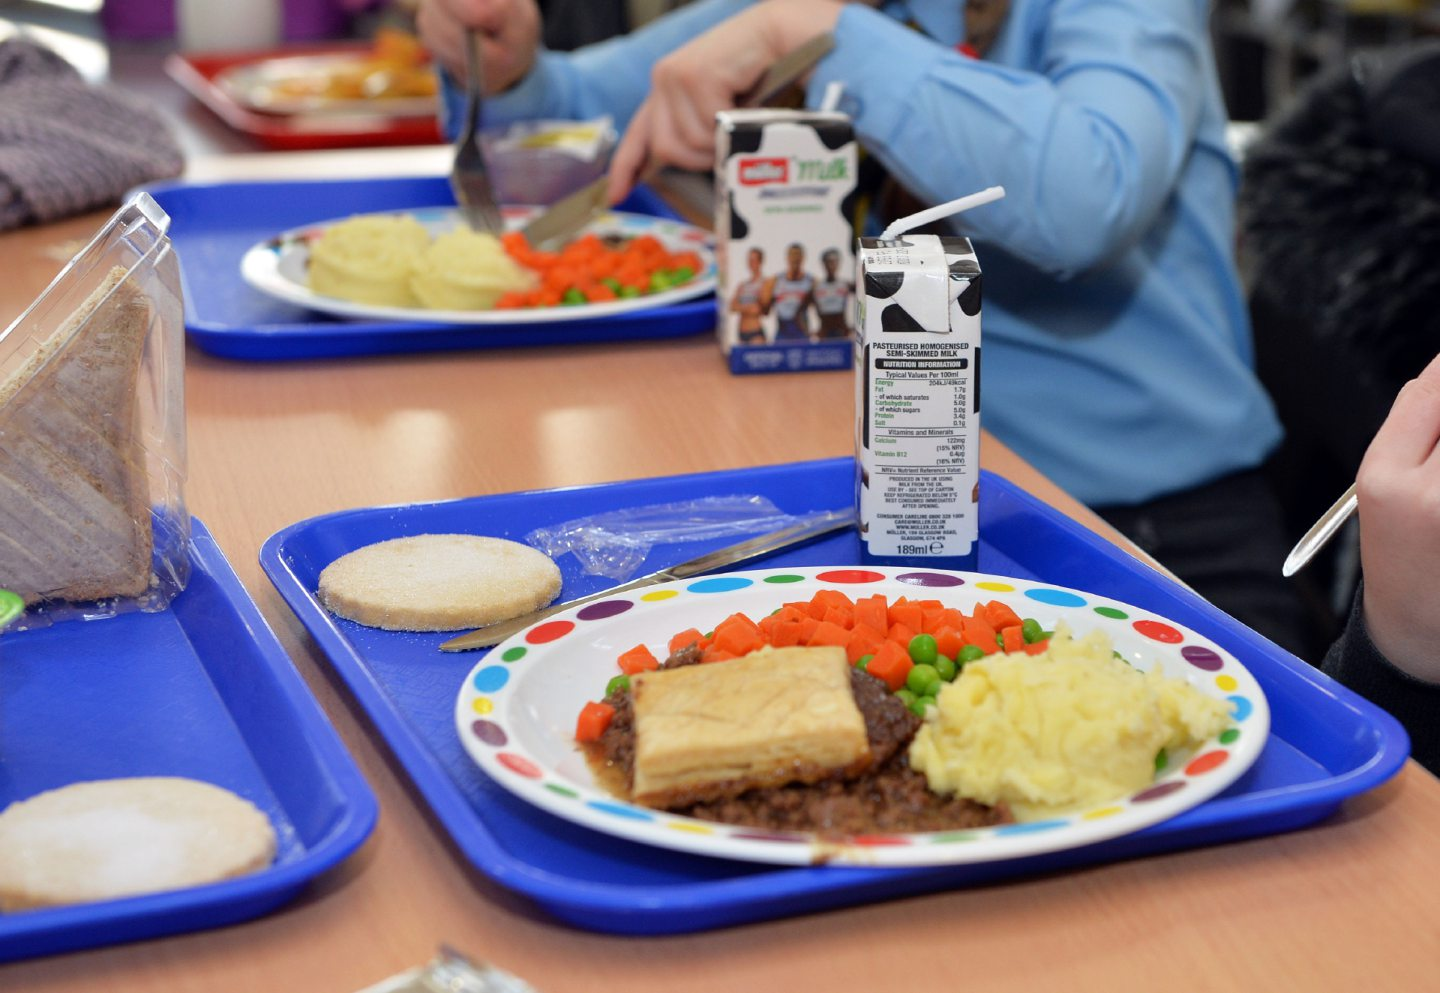 School meal times could look very different when pupils return next month